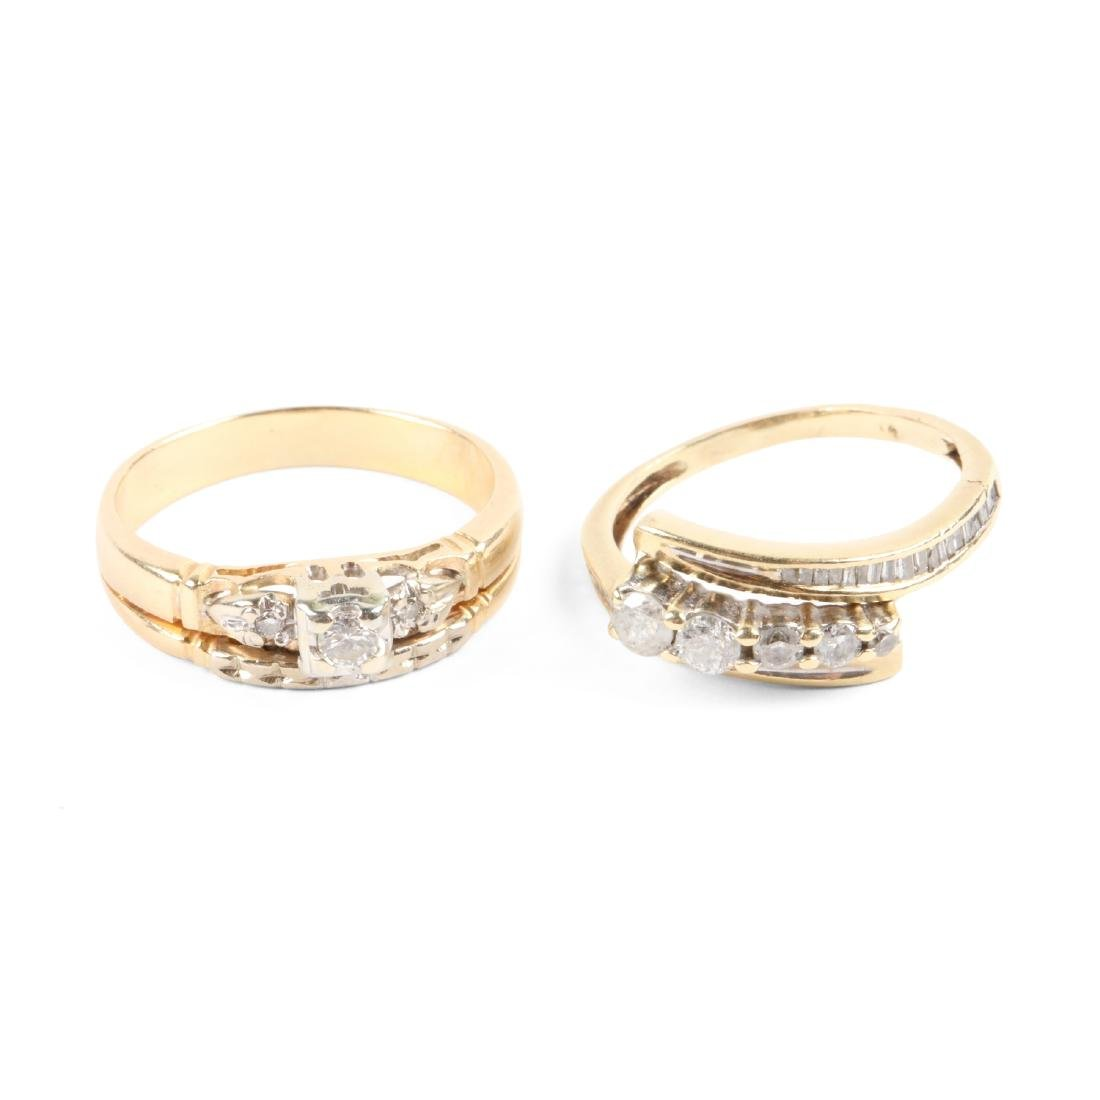 A Pair, 14K Gold & Diamond Rings